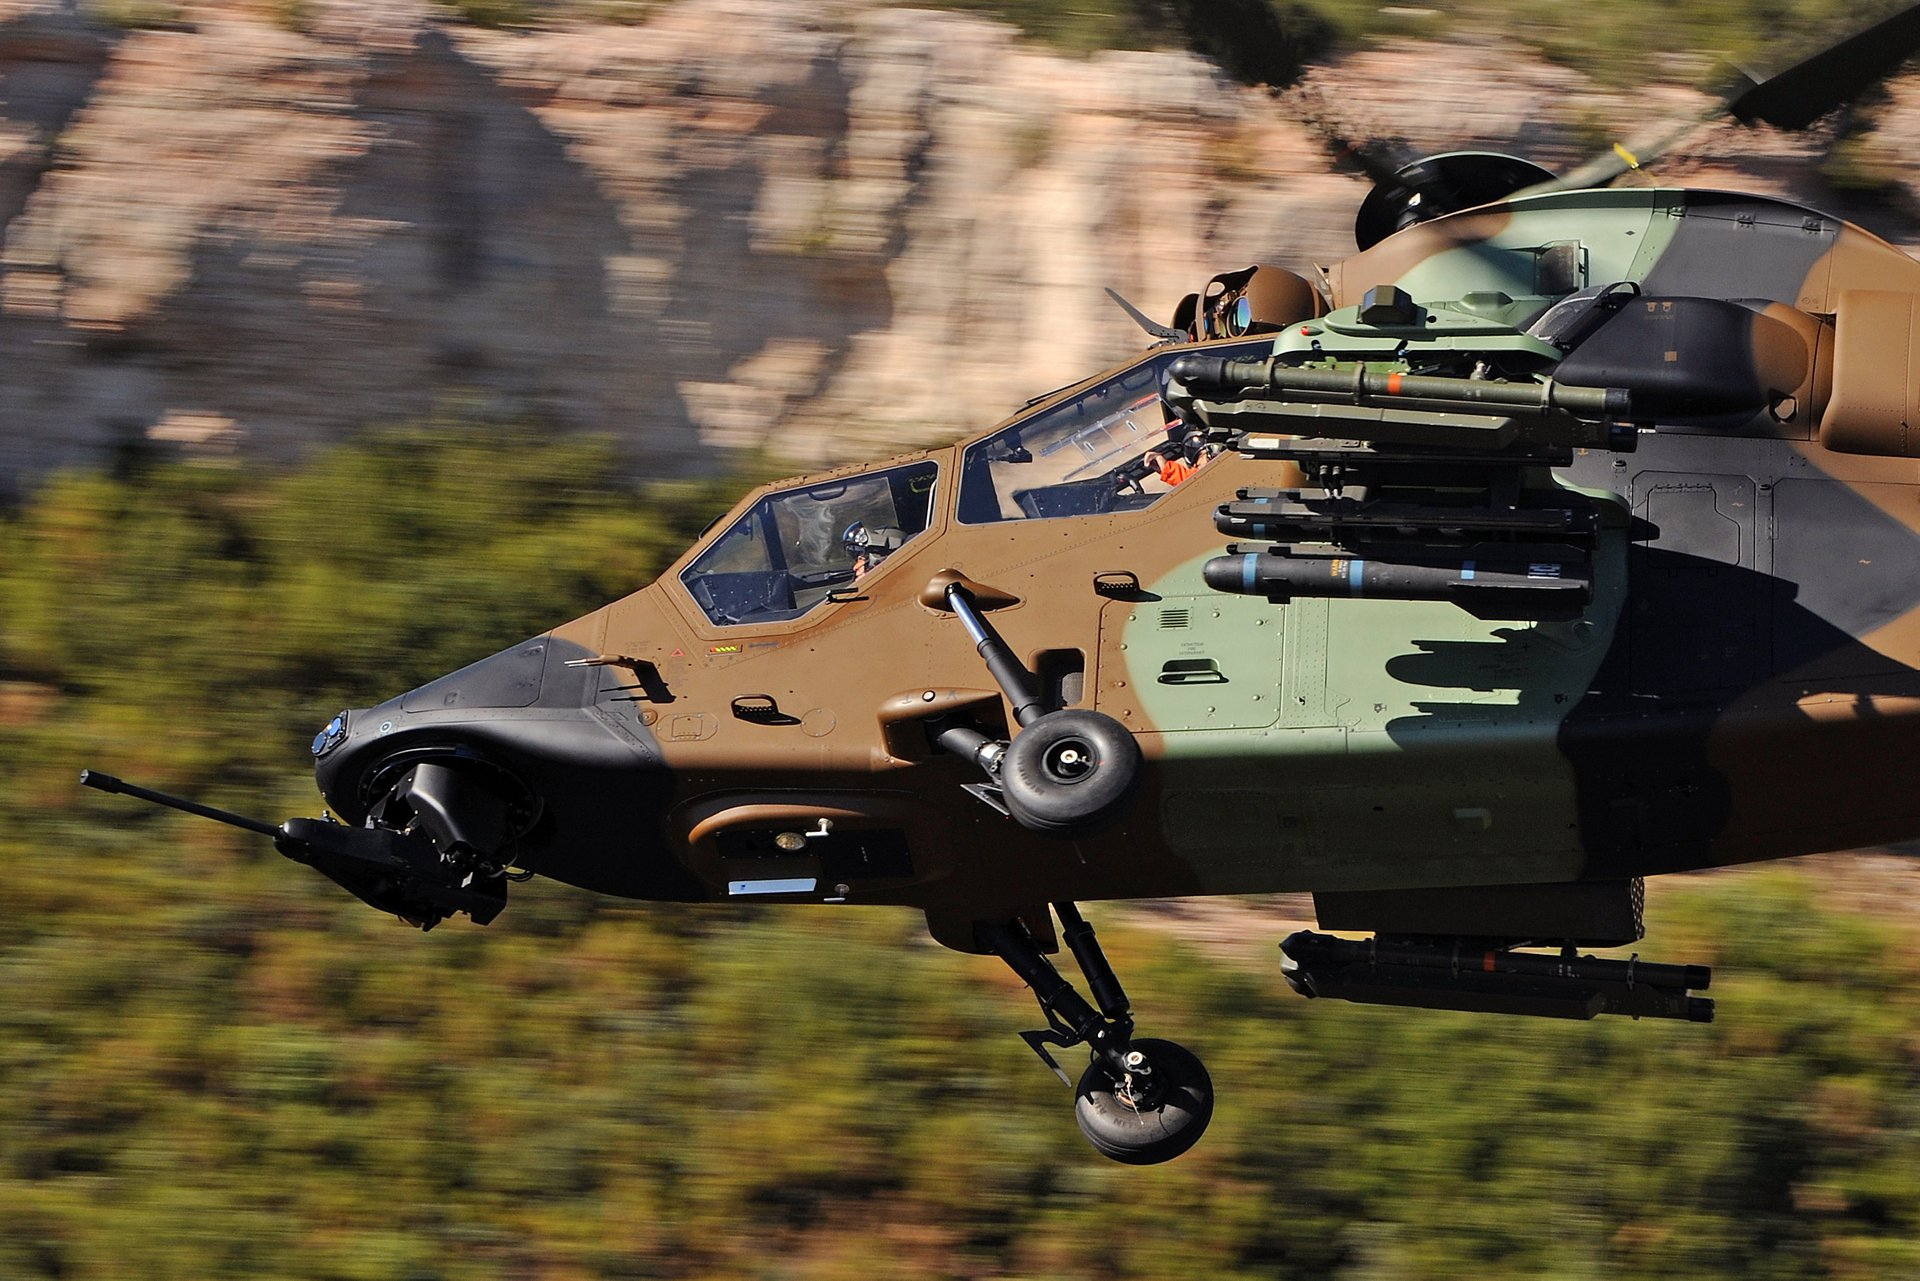 Airbus Helicopters has delivered the first Tiger retrofitted into the HAD version to the French Army Aviation, after having previously completed its formal acceptance process with the French Defence Procurement Agency (DGA).